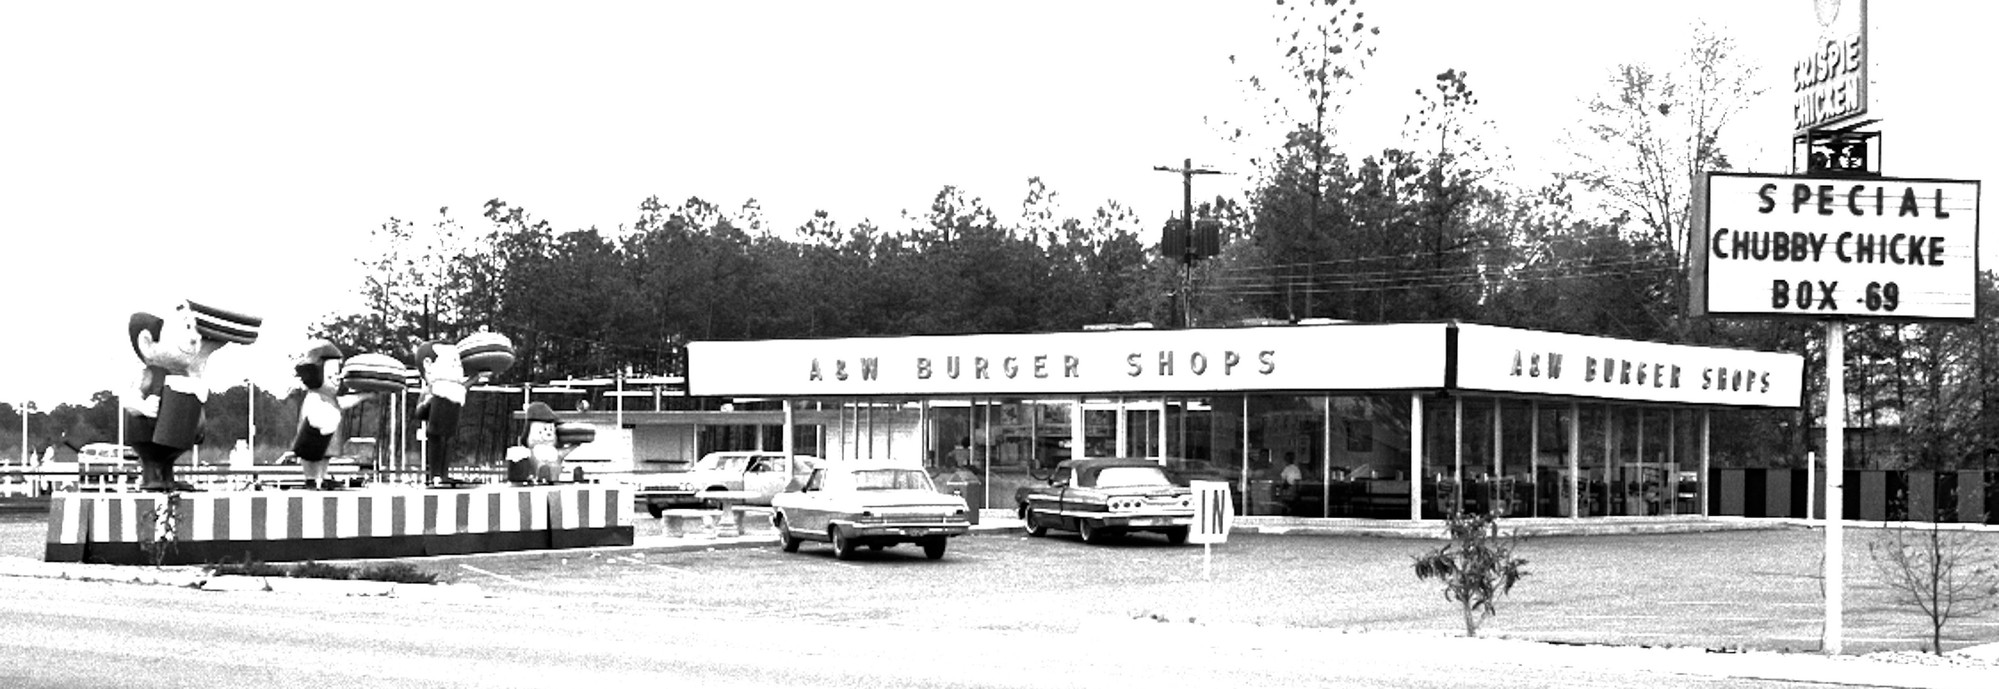 The A & W Burger Shop was on Wesmark next to Putt-Putt Mini-Golf facility.